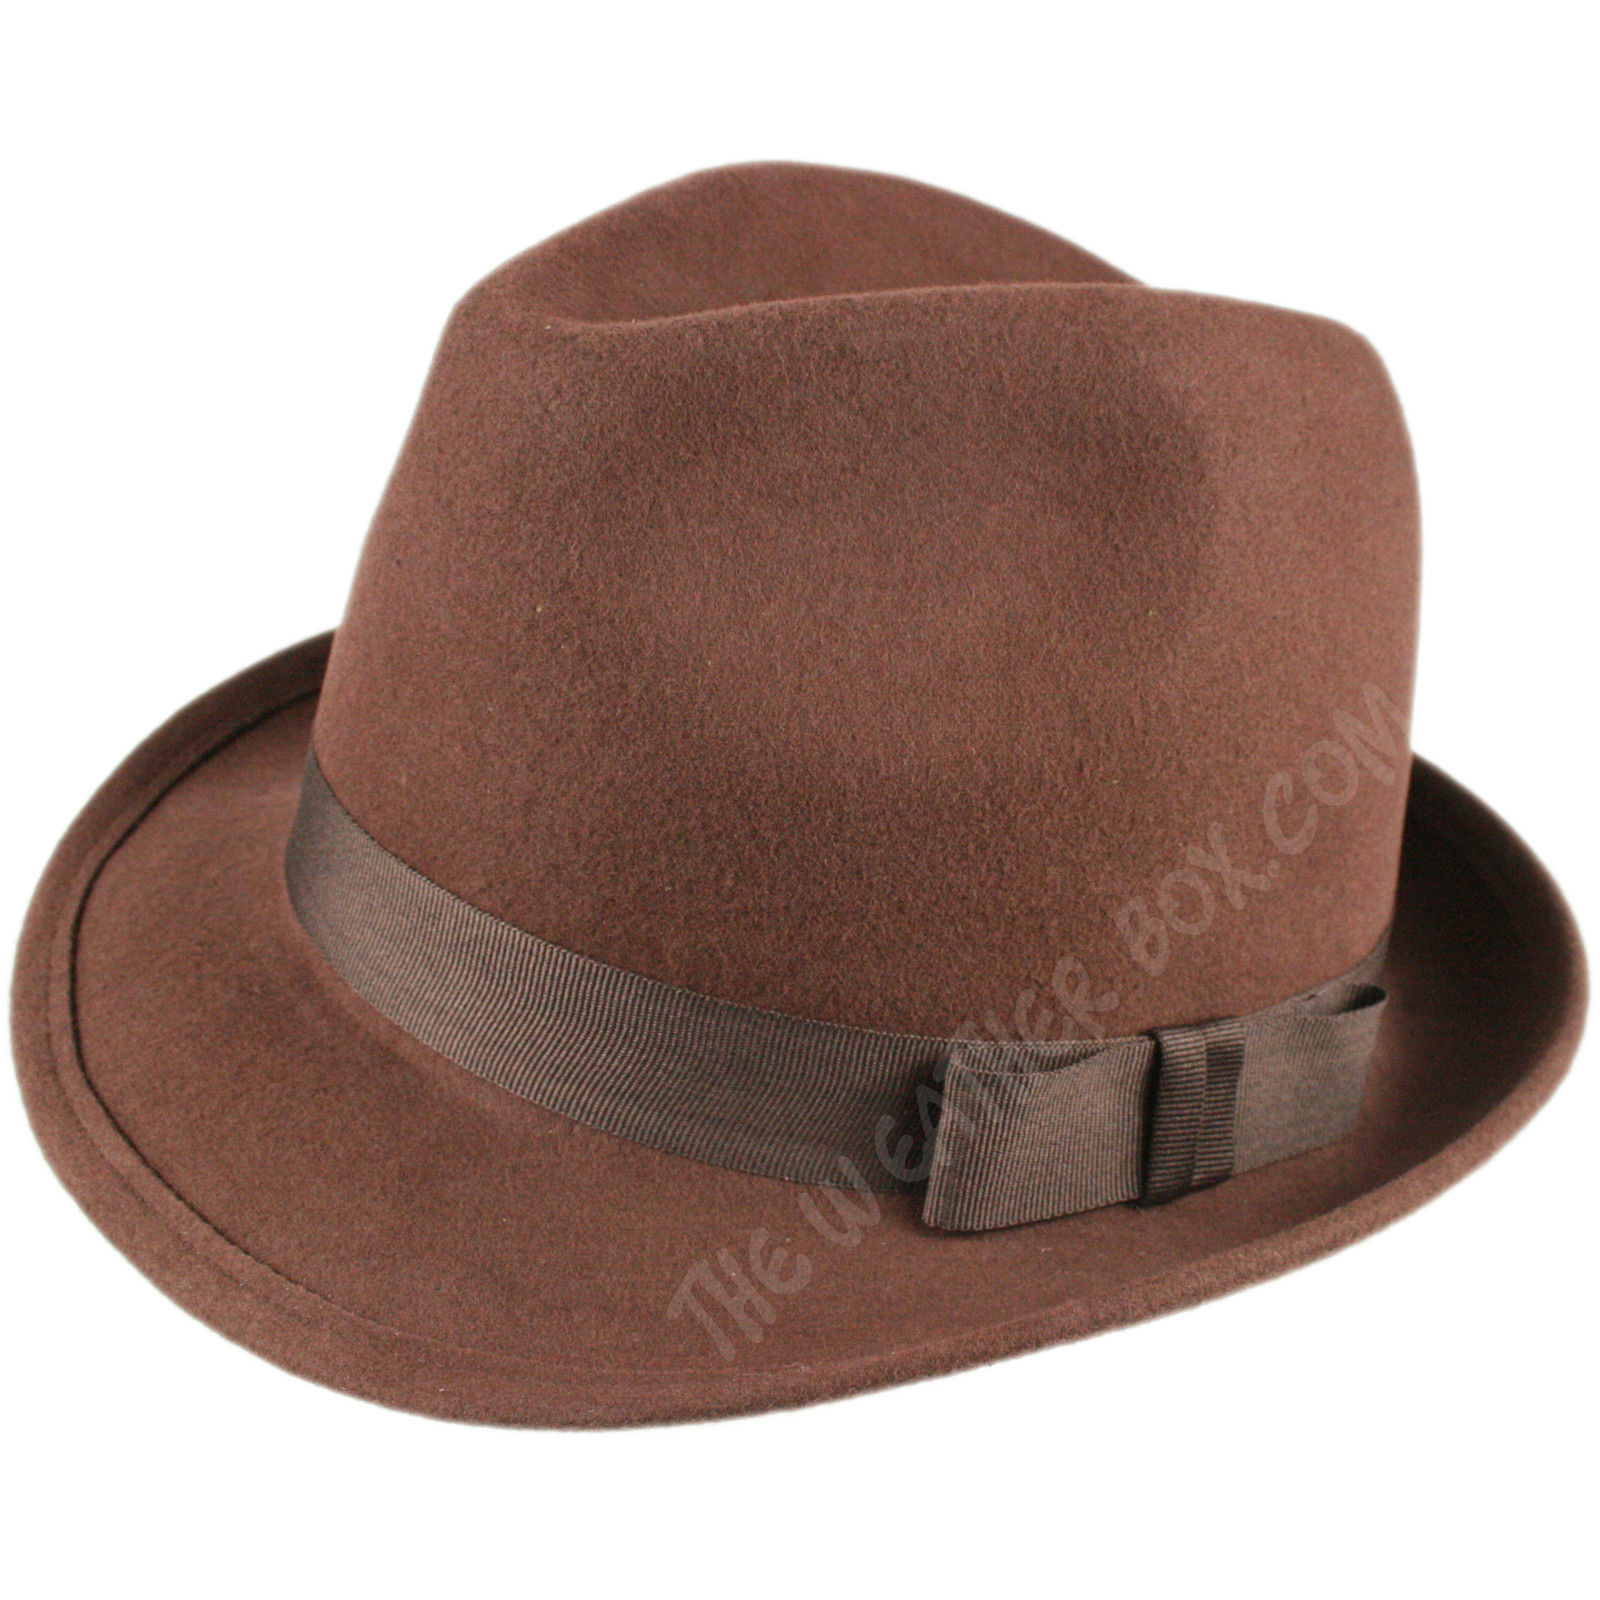 Faddism HAT57BEGSTRPSTW Faddism Stylish Beige Stripe Flax Design Fedora Hat for Men and Women. Add To Cart. There is a problem adding to cart. Please try again. Product - Club Pack of 12 Green Vel-Felt St. Patrick's Day Fedora Hat - Adult Sized Product - Club Pack of 6 Black Sequin Glitz 'N Gleam Fedora Party Hat Halloween Accessory.